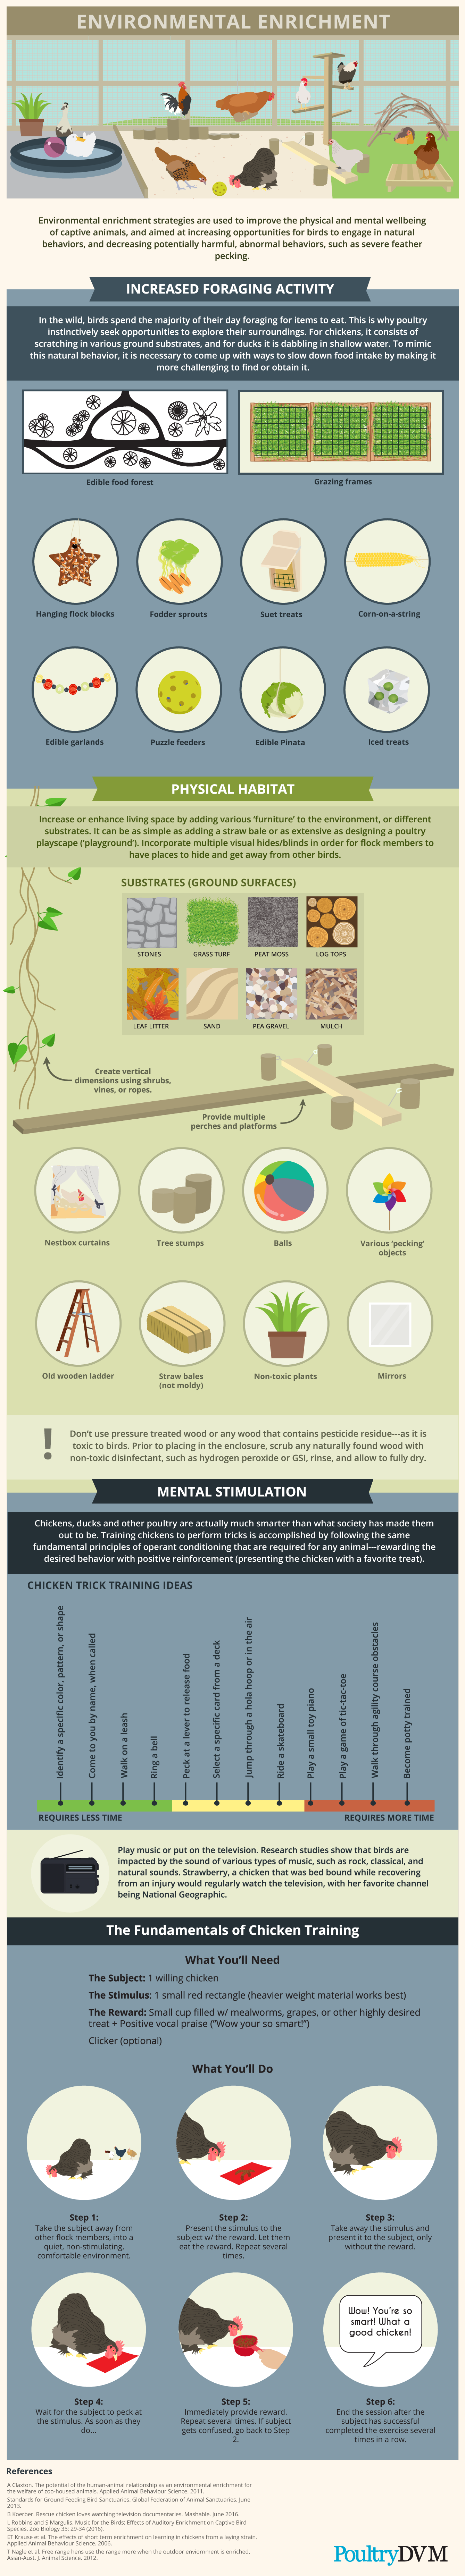 How to Create an Enriched Environment for Captive Birds - Infographic